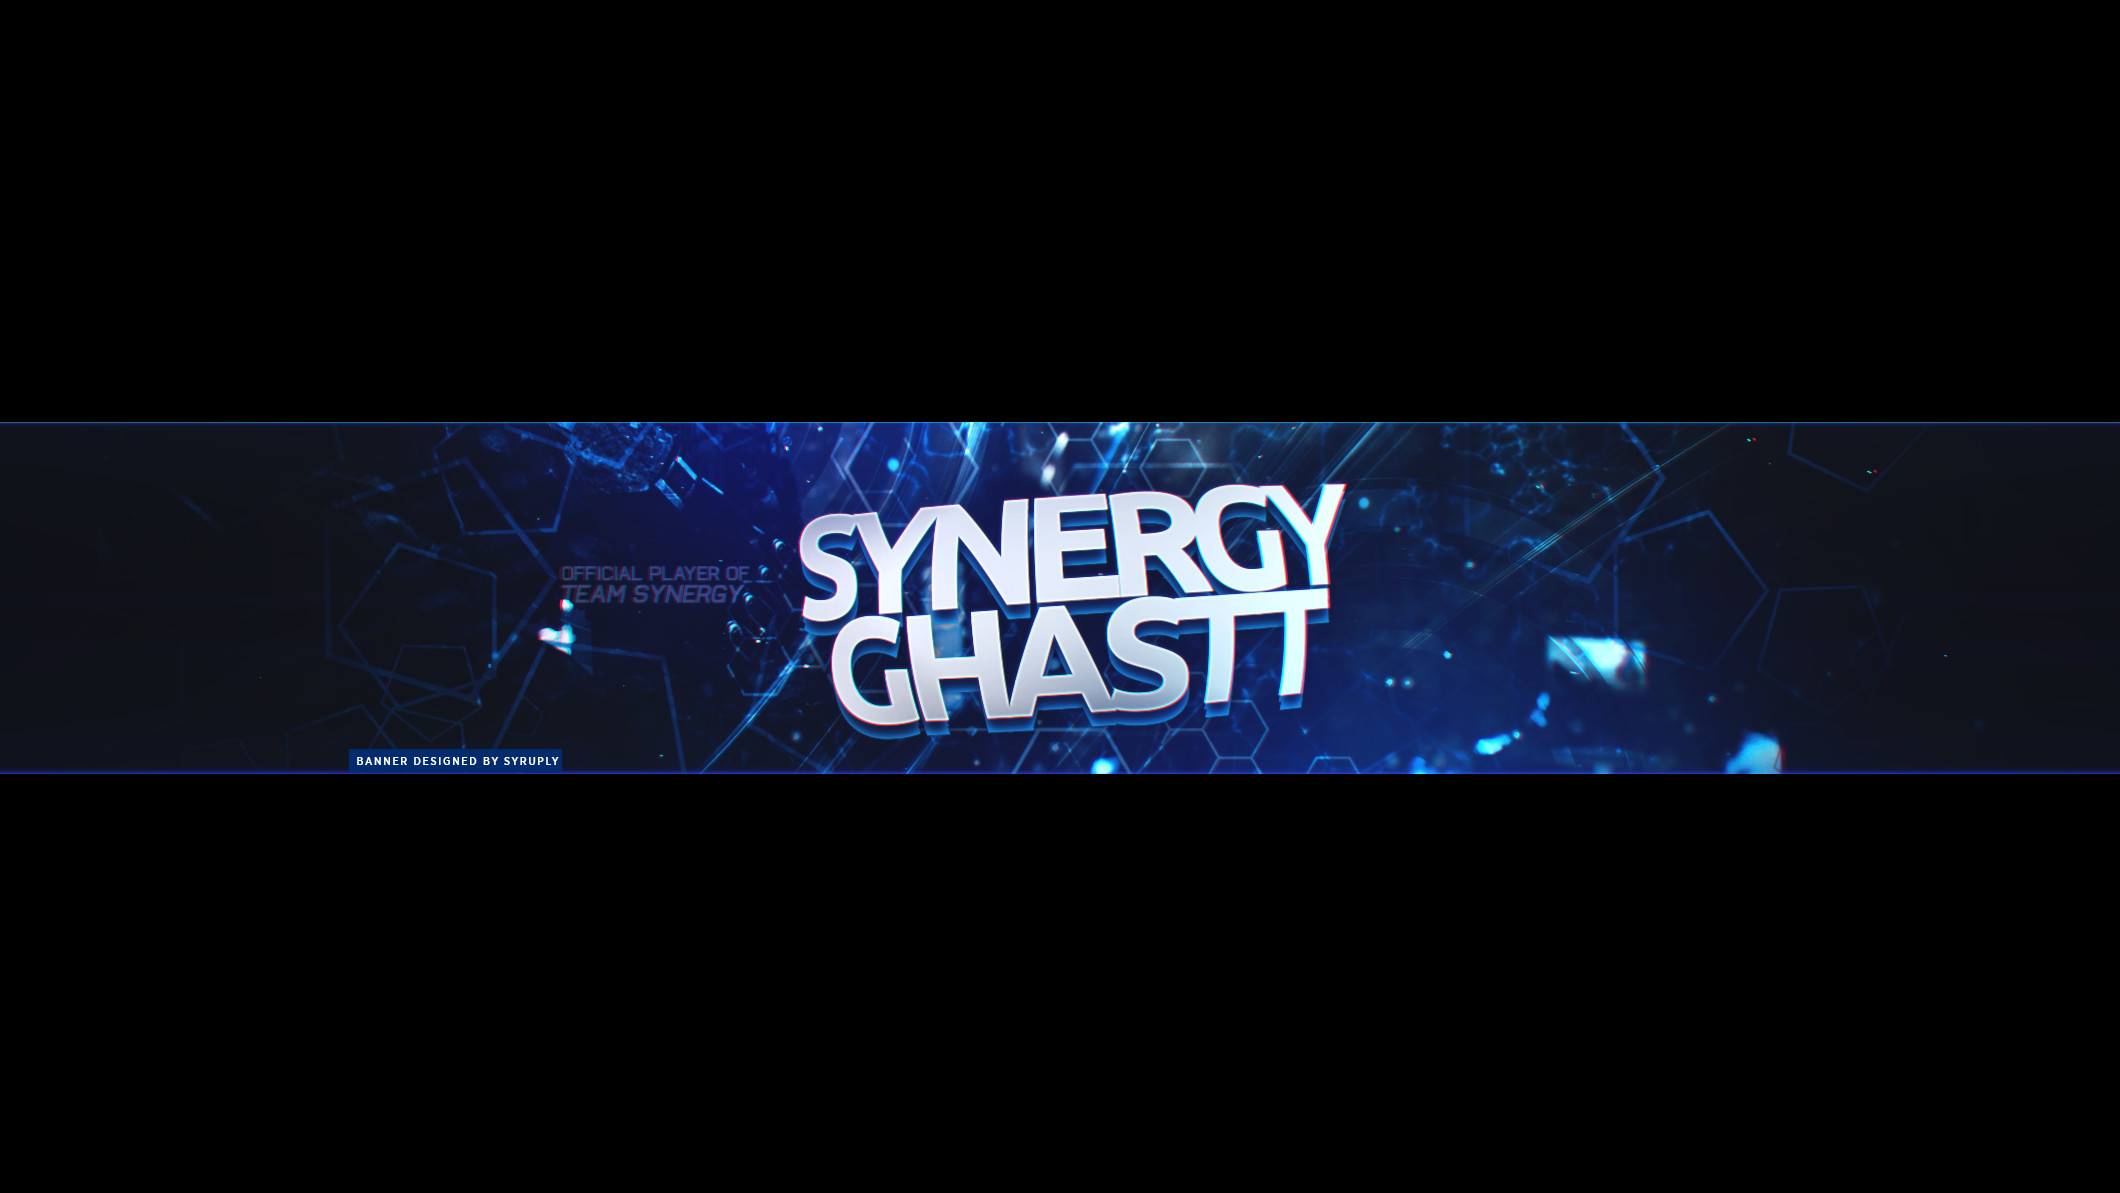 Synergy Ghastt YouTube Banner by Syruply Synergy Ghastt YouTube Banner by  Syruply